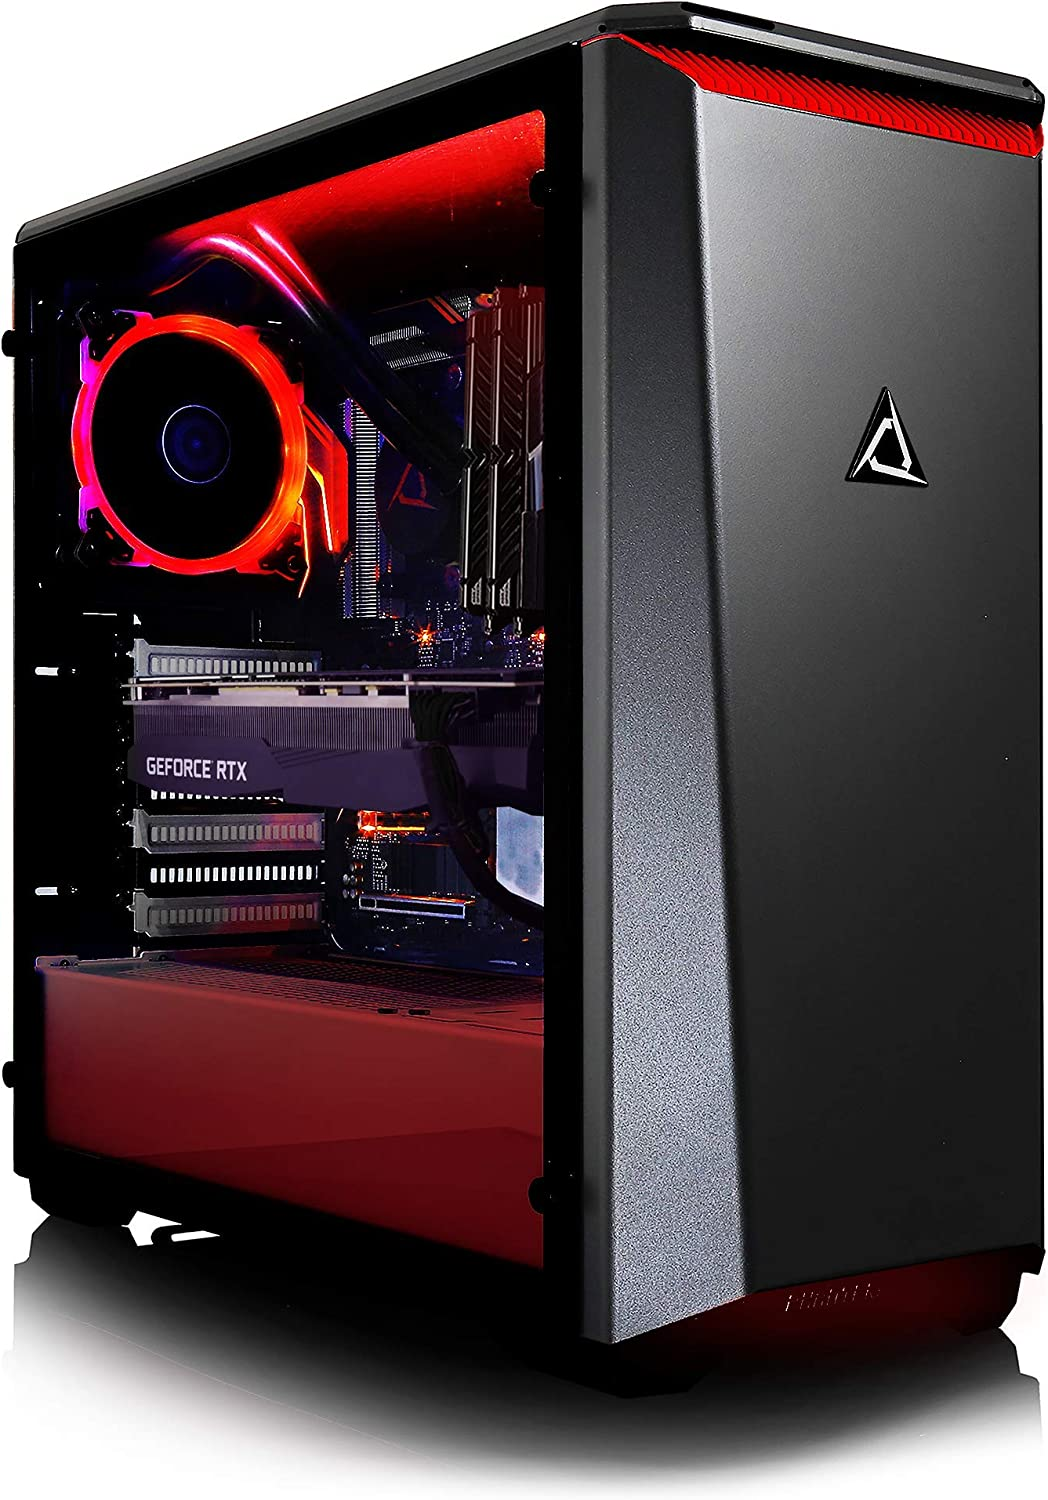 CLX Set - Elite Gaming Desktop PC - Liquid-Cooled Intel Core i7 9700K 3.6GHz 8-Core, Z390 ATX, 16GB DDR4, GeForce RTX 2080 8GB, 960GB SSD + 3TB HDD, Black/Red Mid-Tower Red Fans, Windows 10 Home